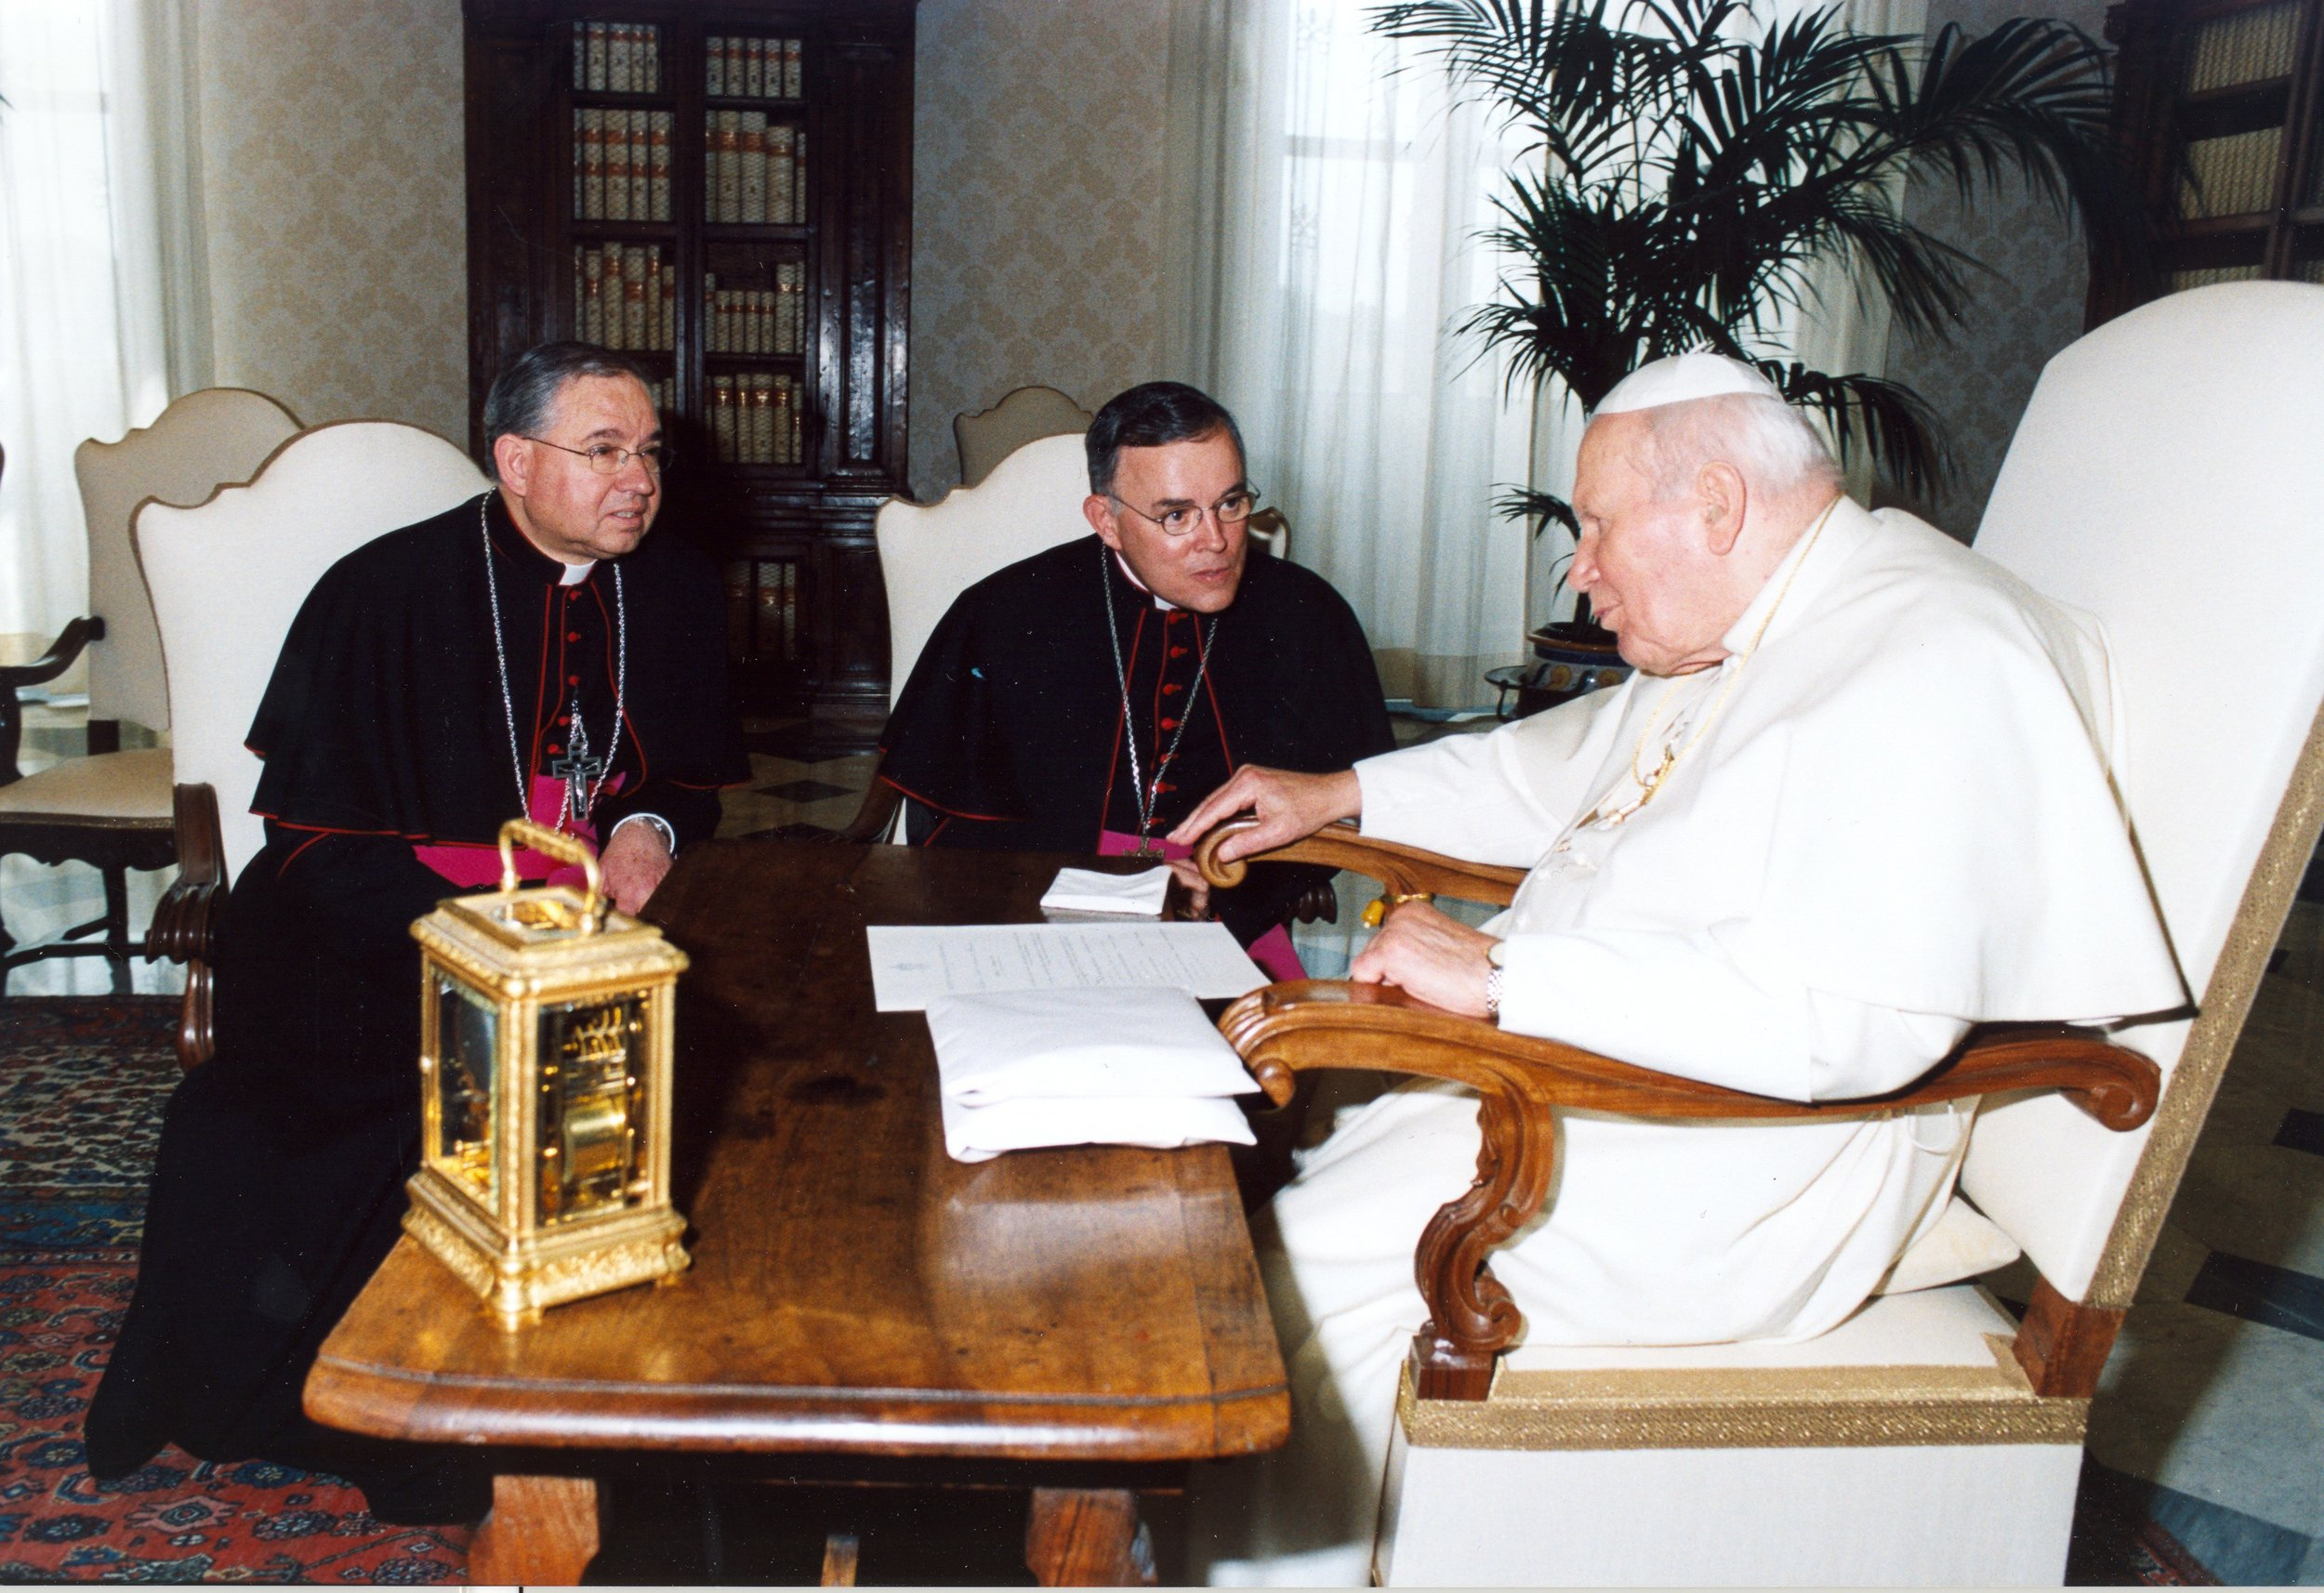 Archbishop Gomez & Archbishop Chaput .jpg